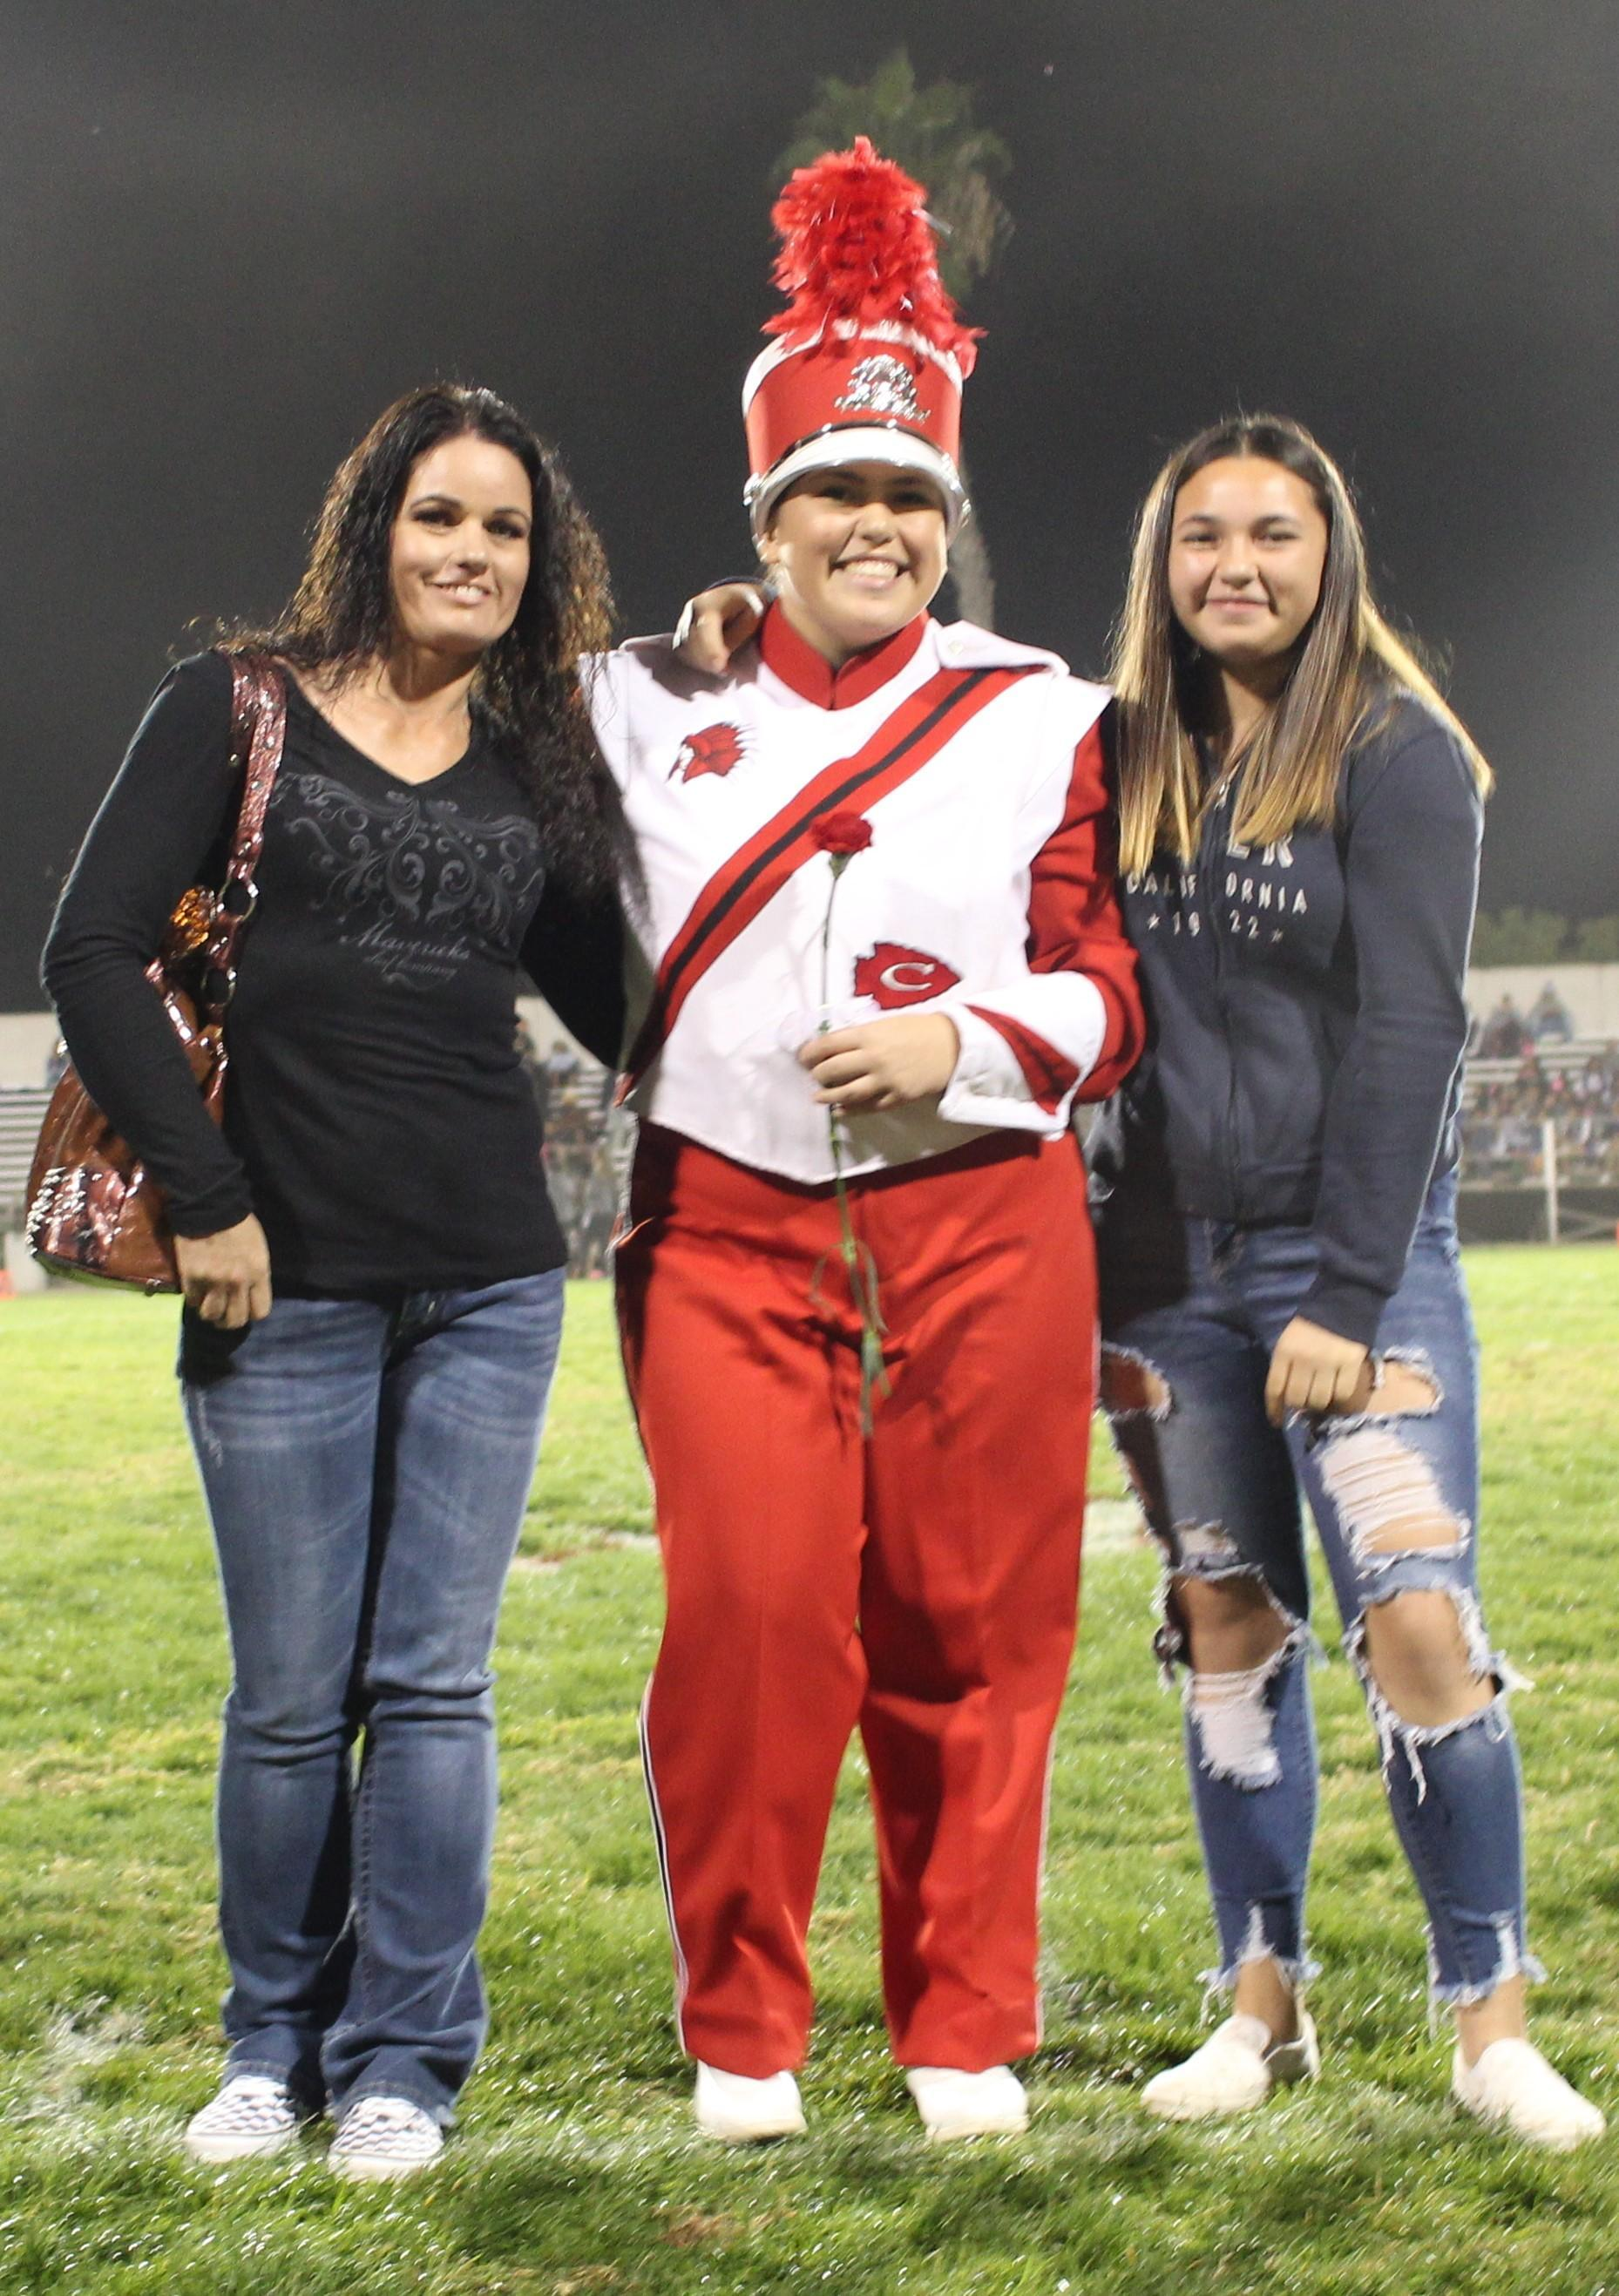 Senior band member Brooke Luna and her escorts.